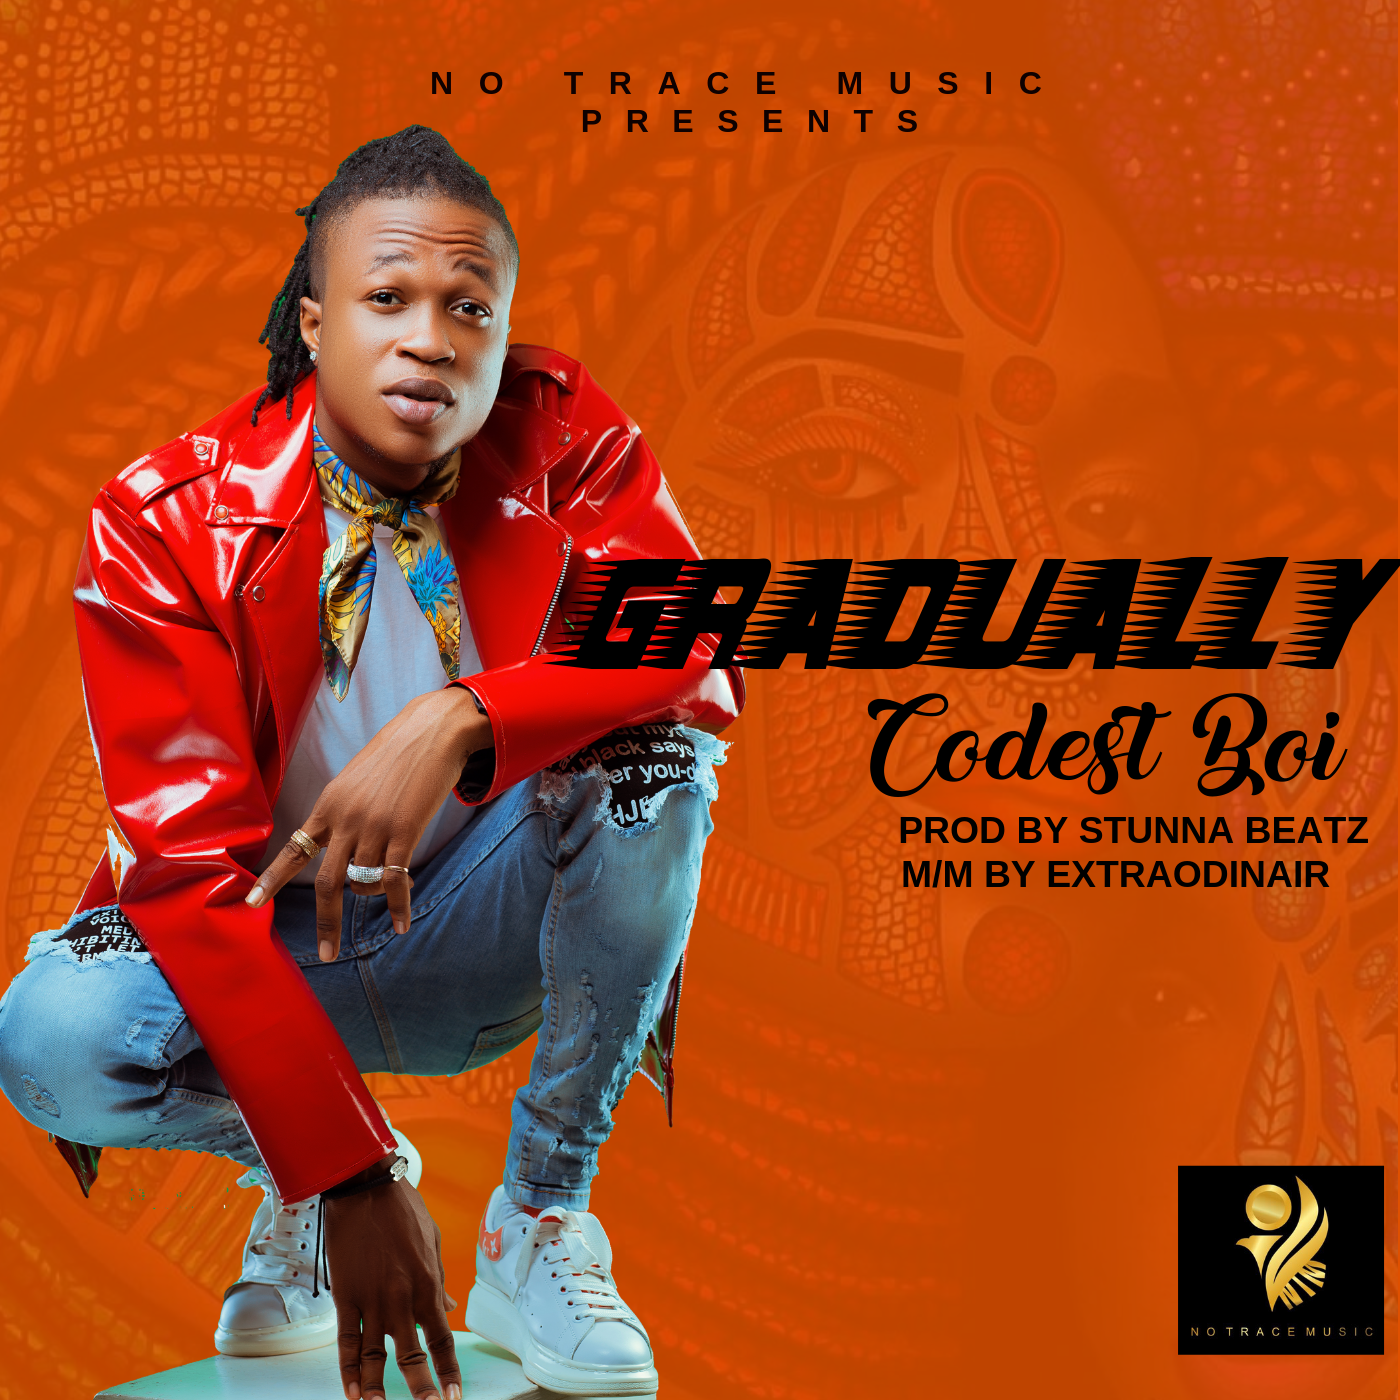 Codest Boi – Gradually